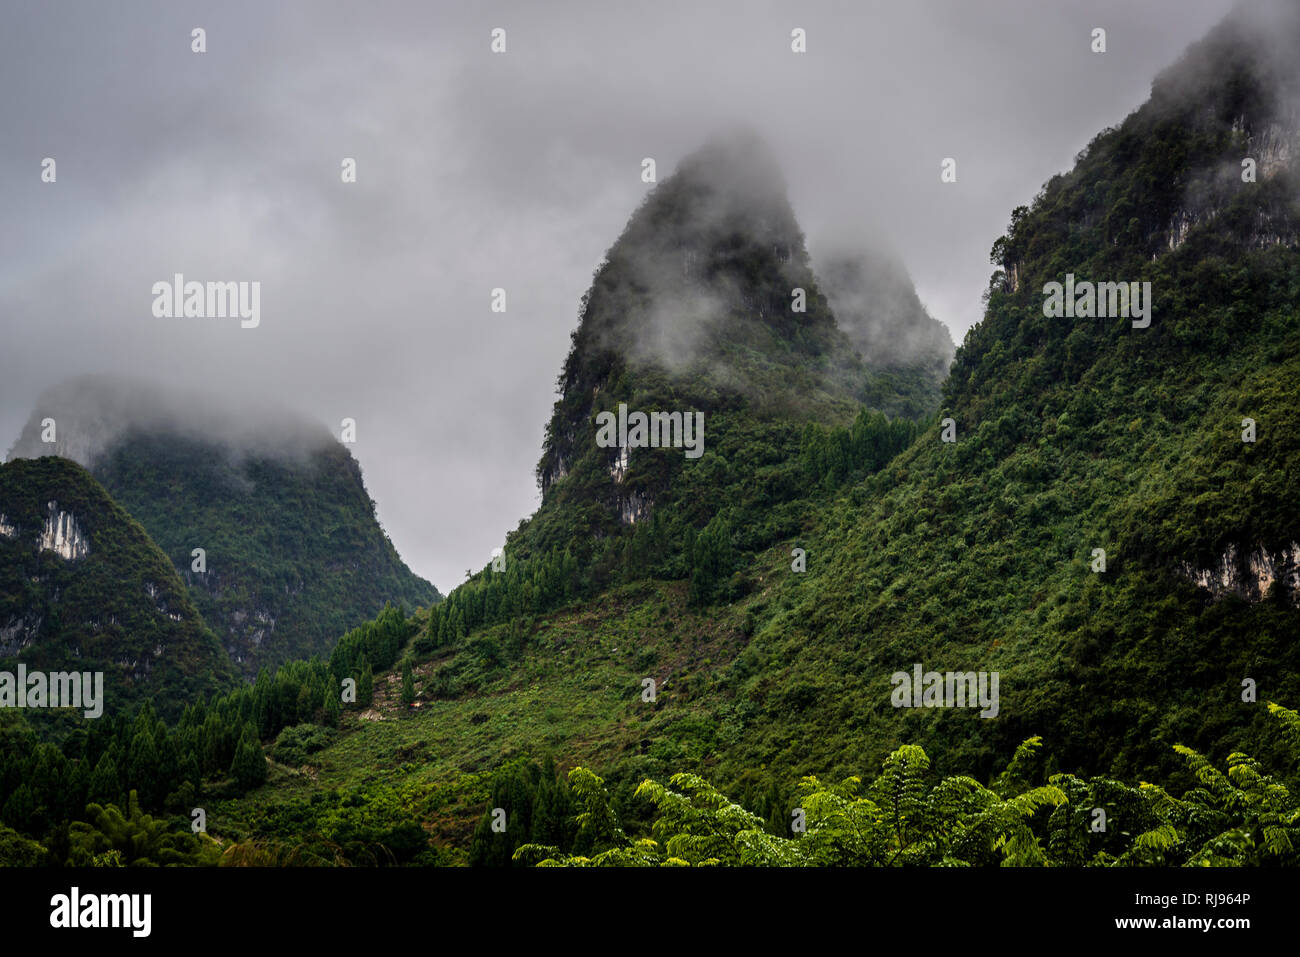 Limestone karst peaks enveloped in clouds and mist, near Xingping, Guilin region, Guangxi province, China - Stock Image